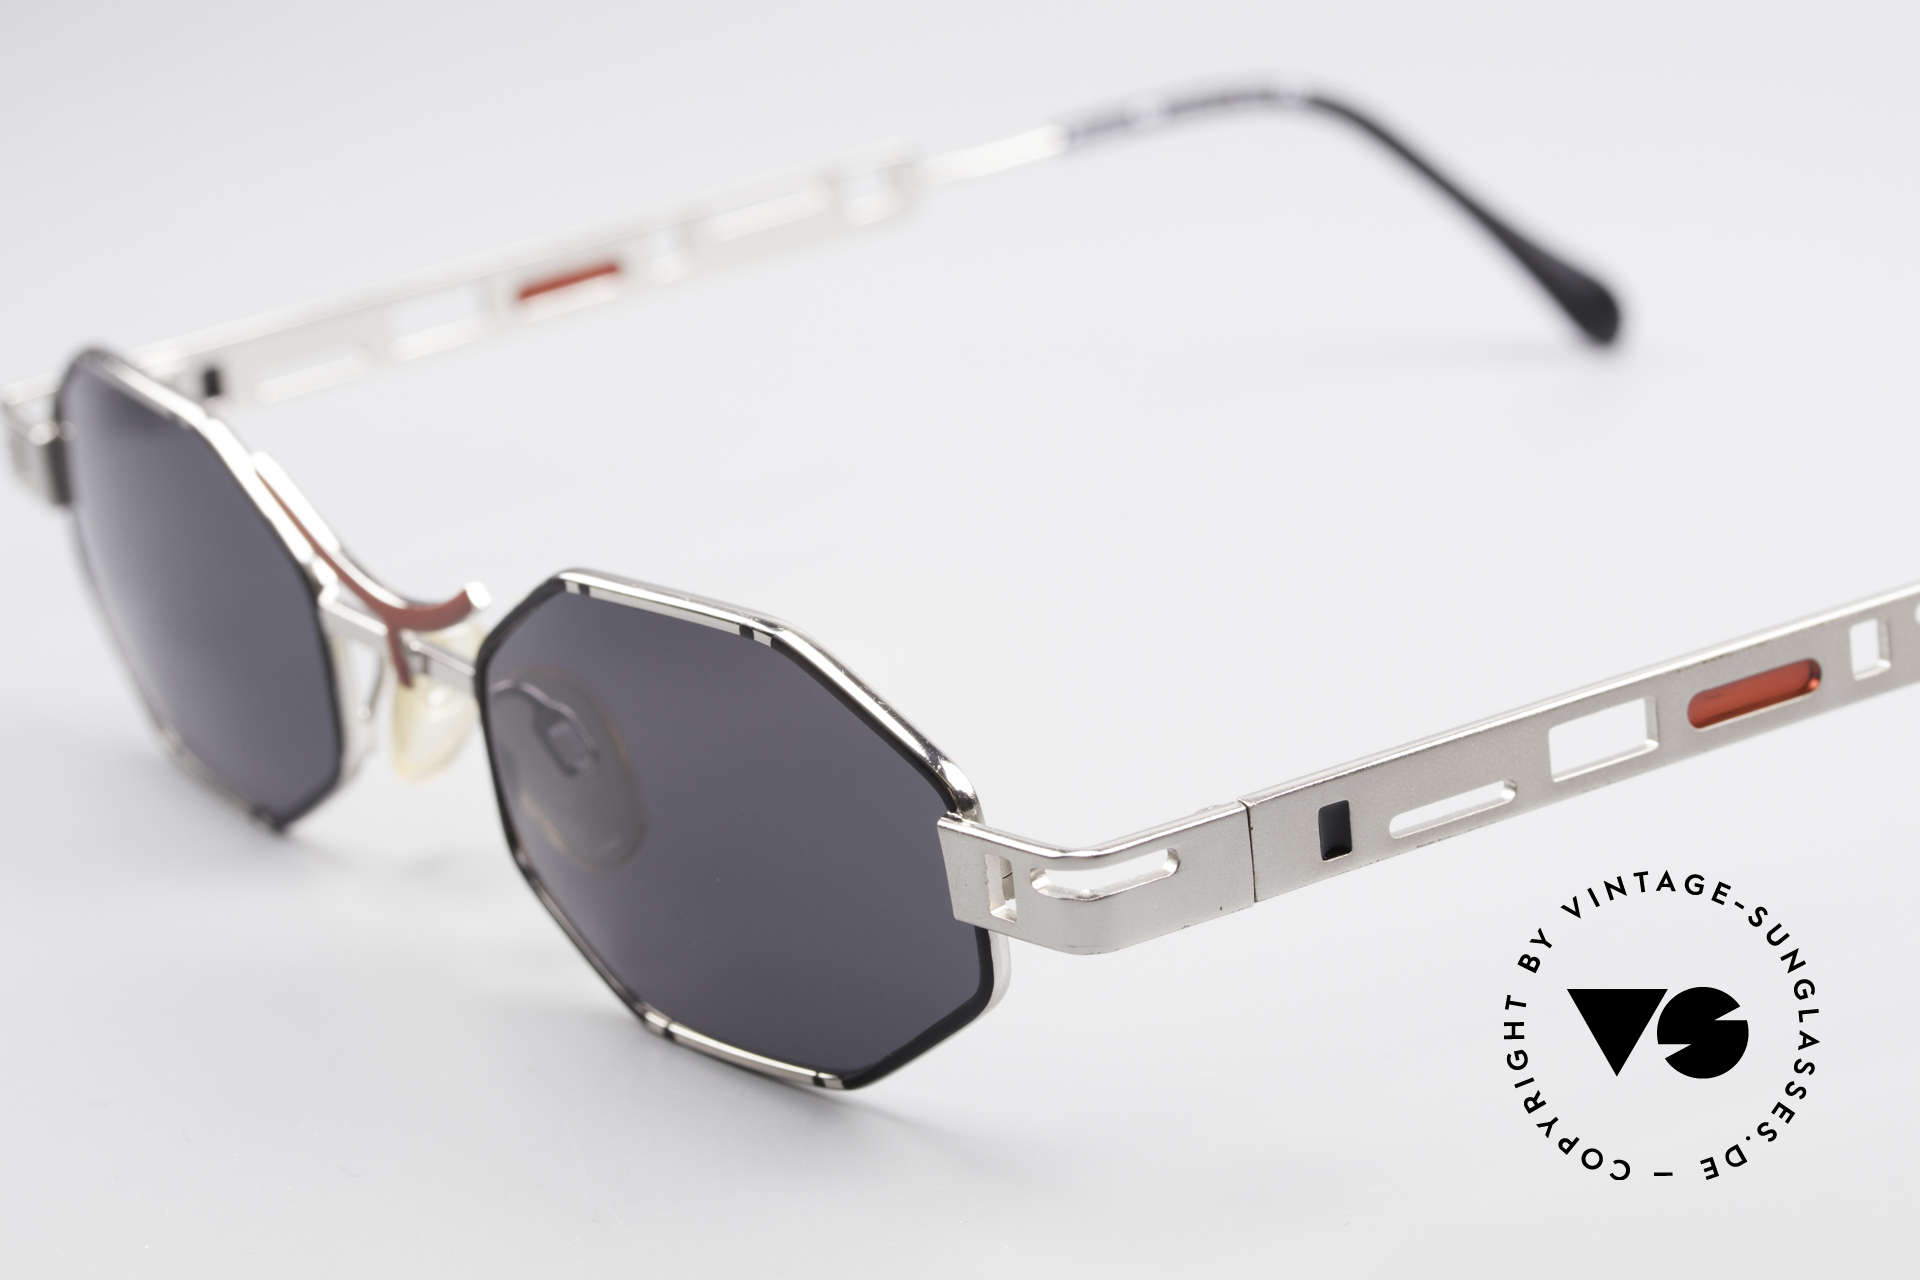 Casanova CLC2 Industrial Steampunk Shades, furthermore with subtle colors accents in black & red, Made for Men and Women